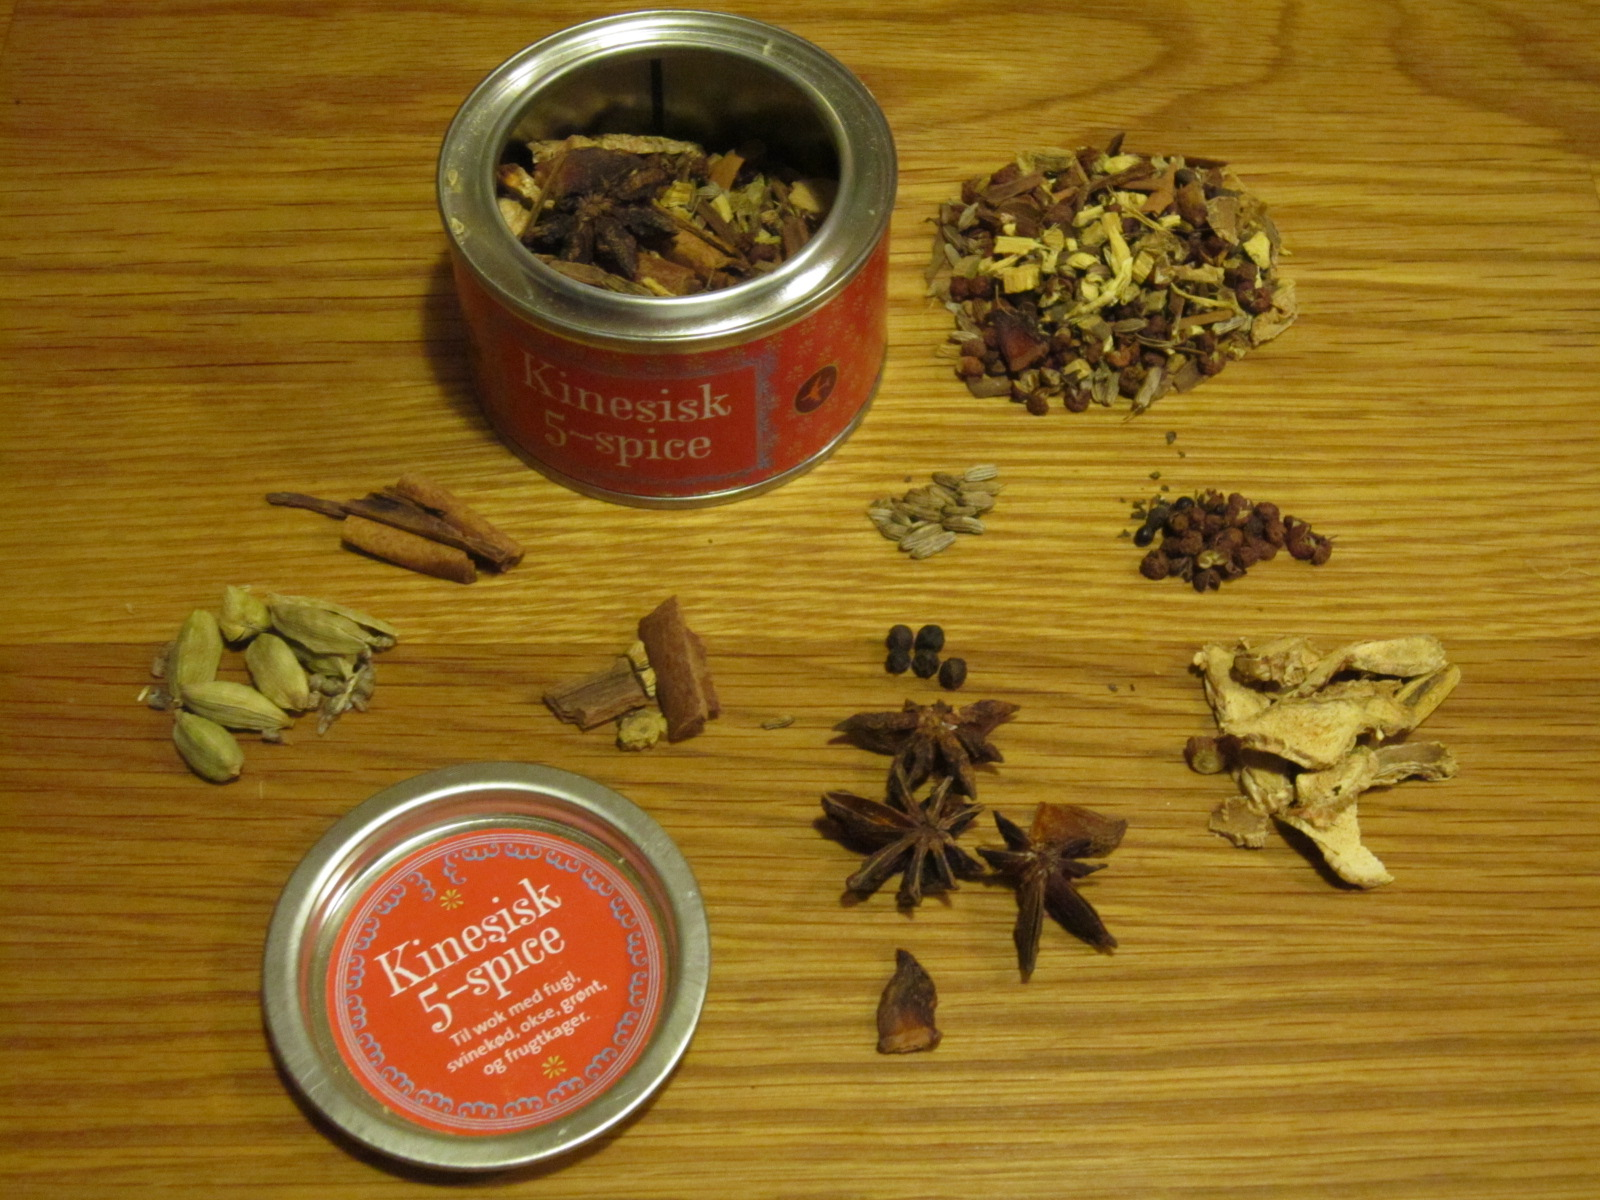 Description: 5-spice krydderiblandingen fra Camilla Plum